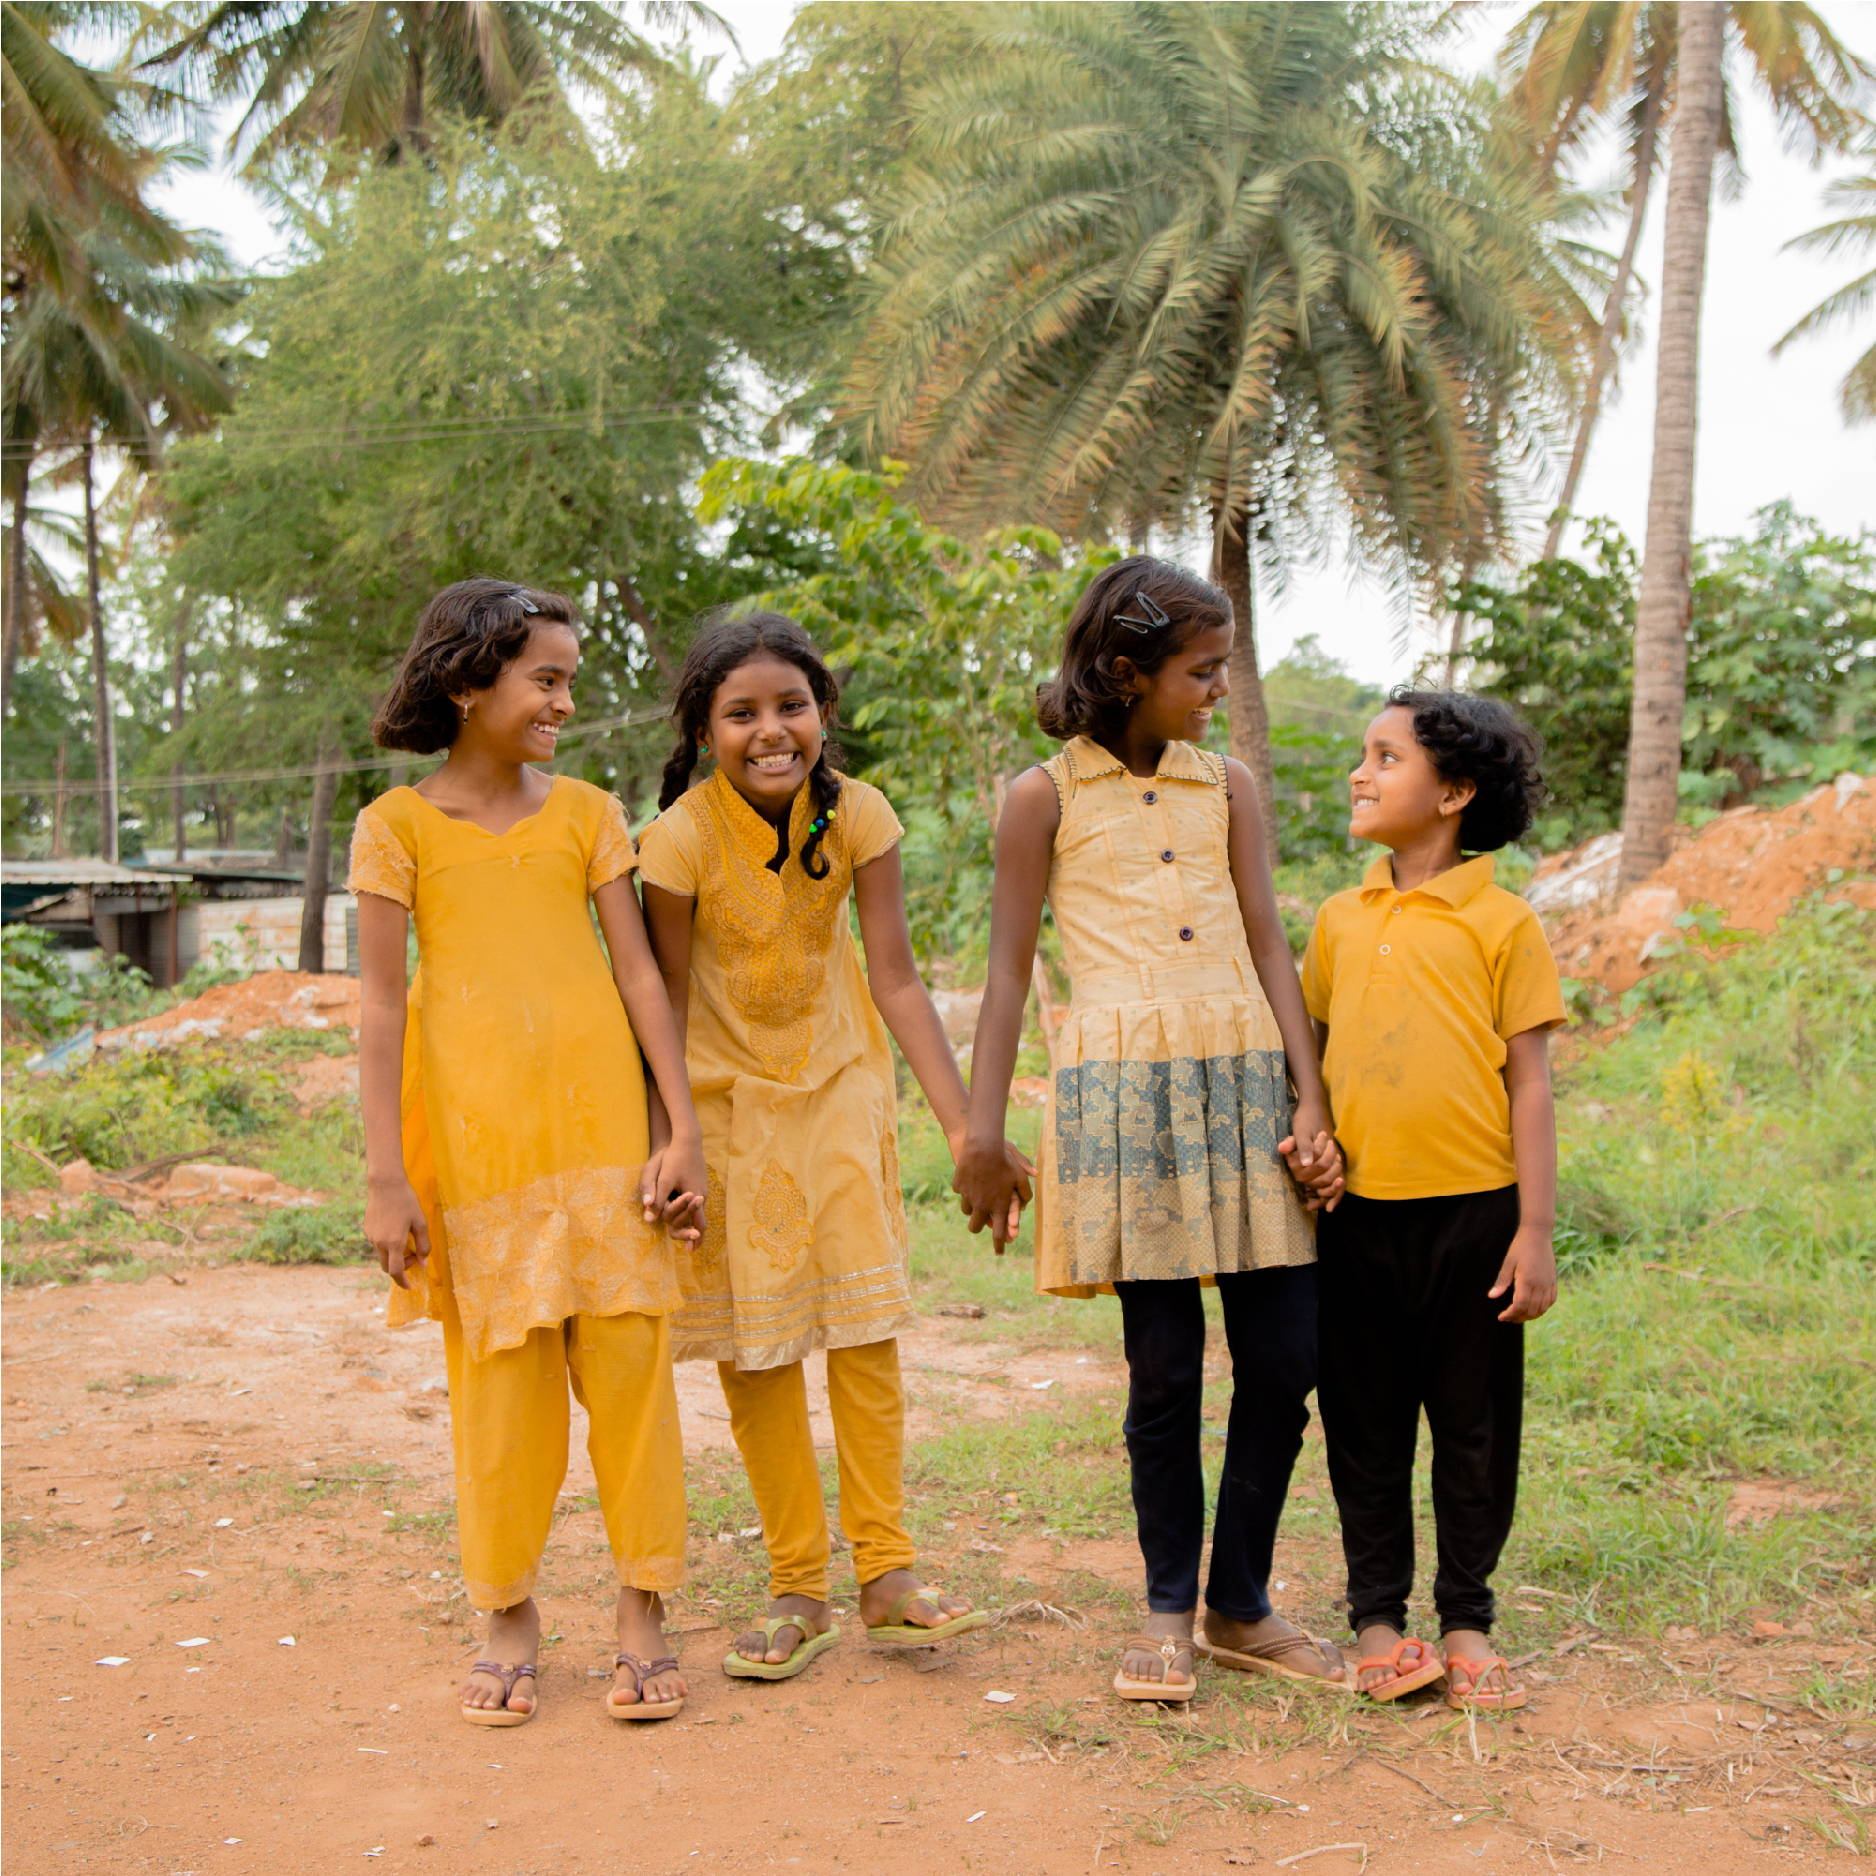 3 young Indian girls, hold hands while smiling, laughing, and looking at each other. They are all wearing yellow dresses.